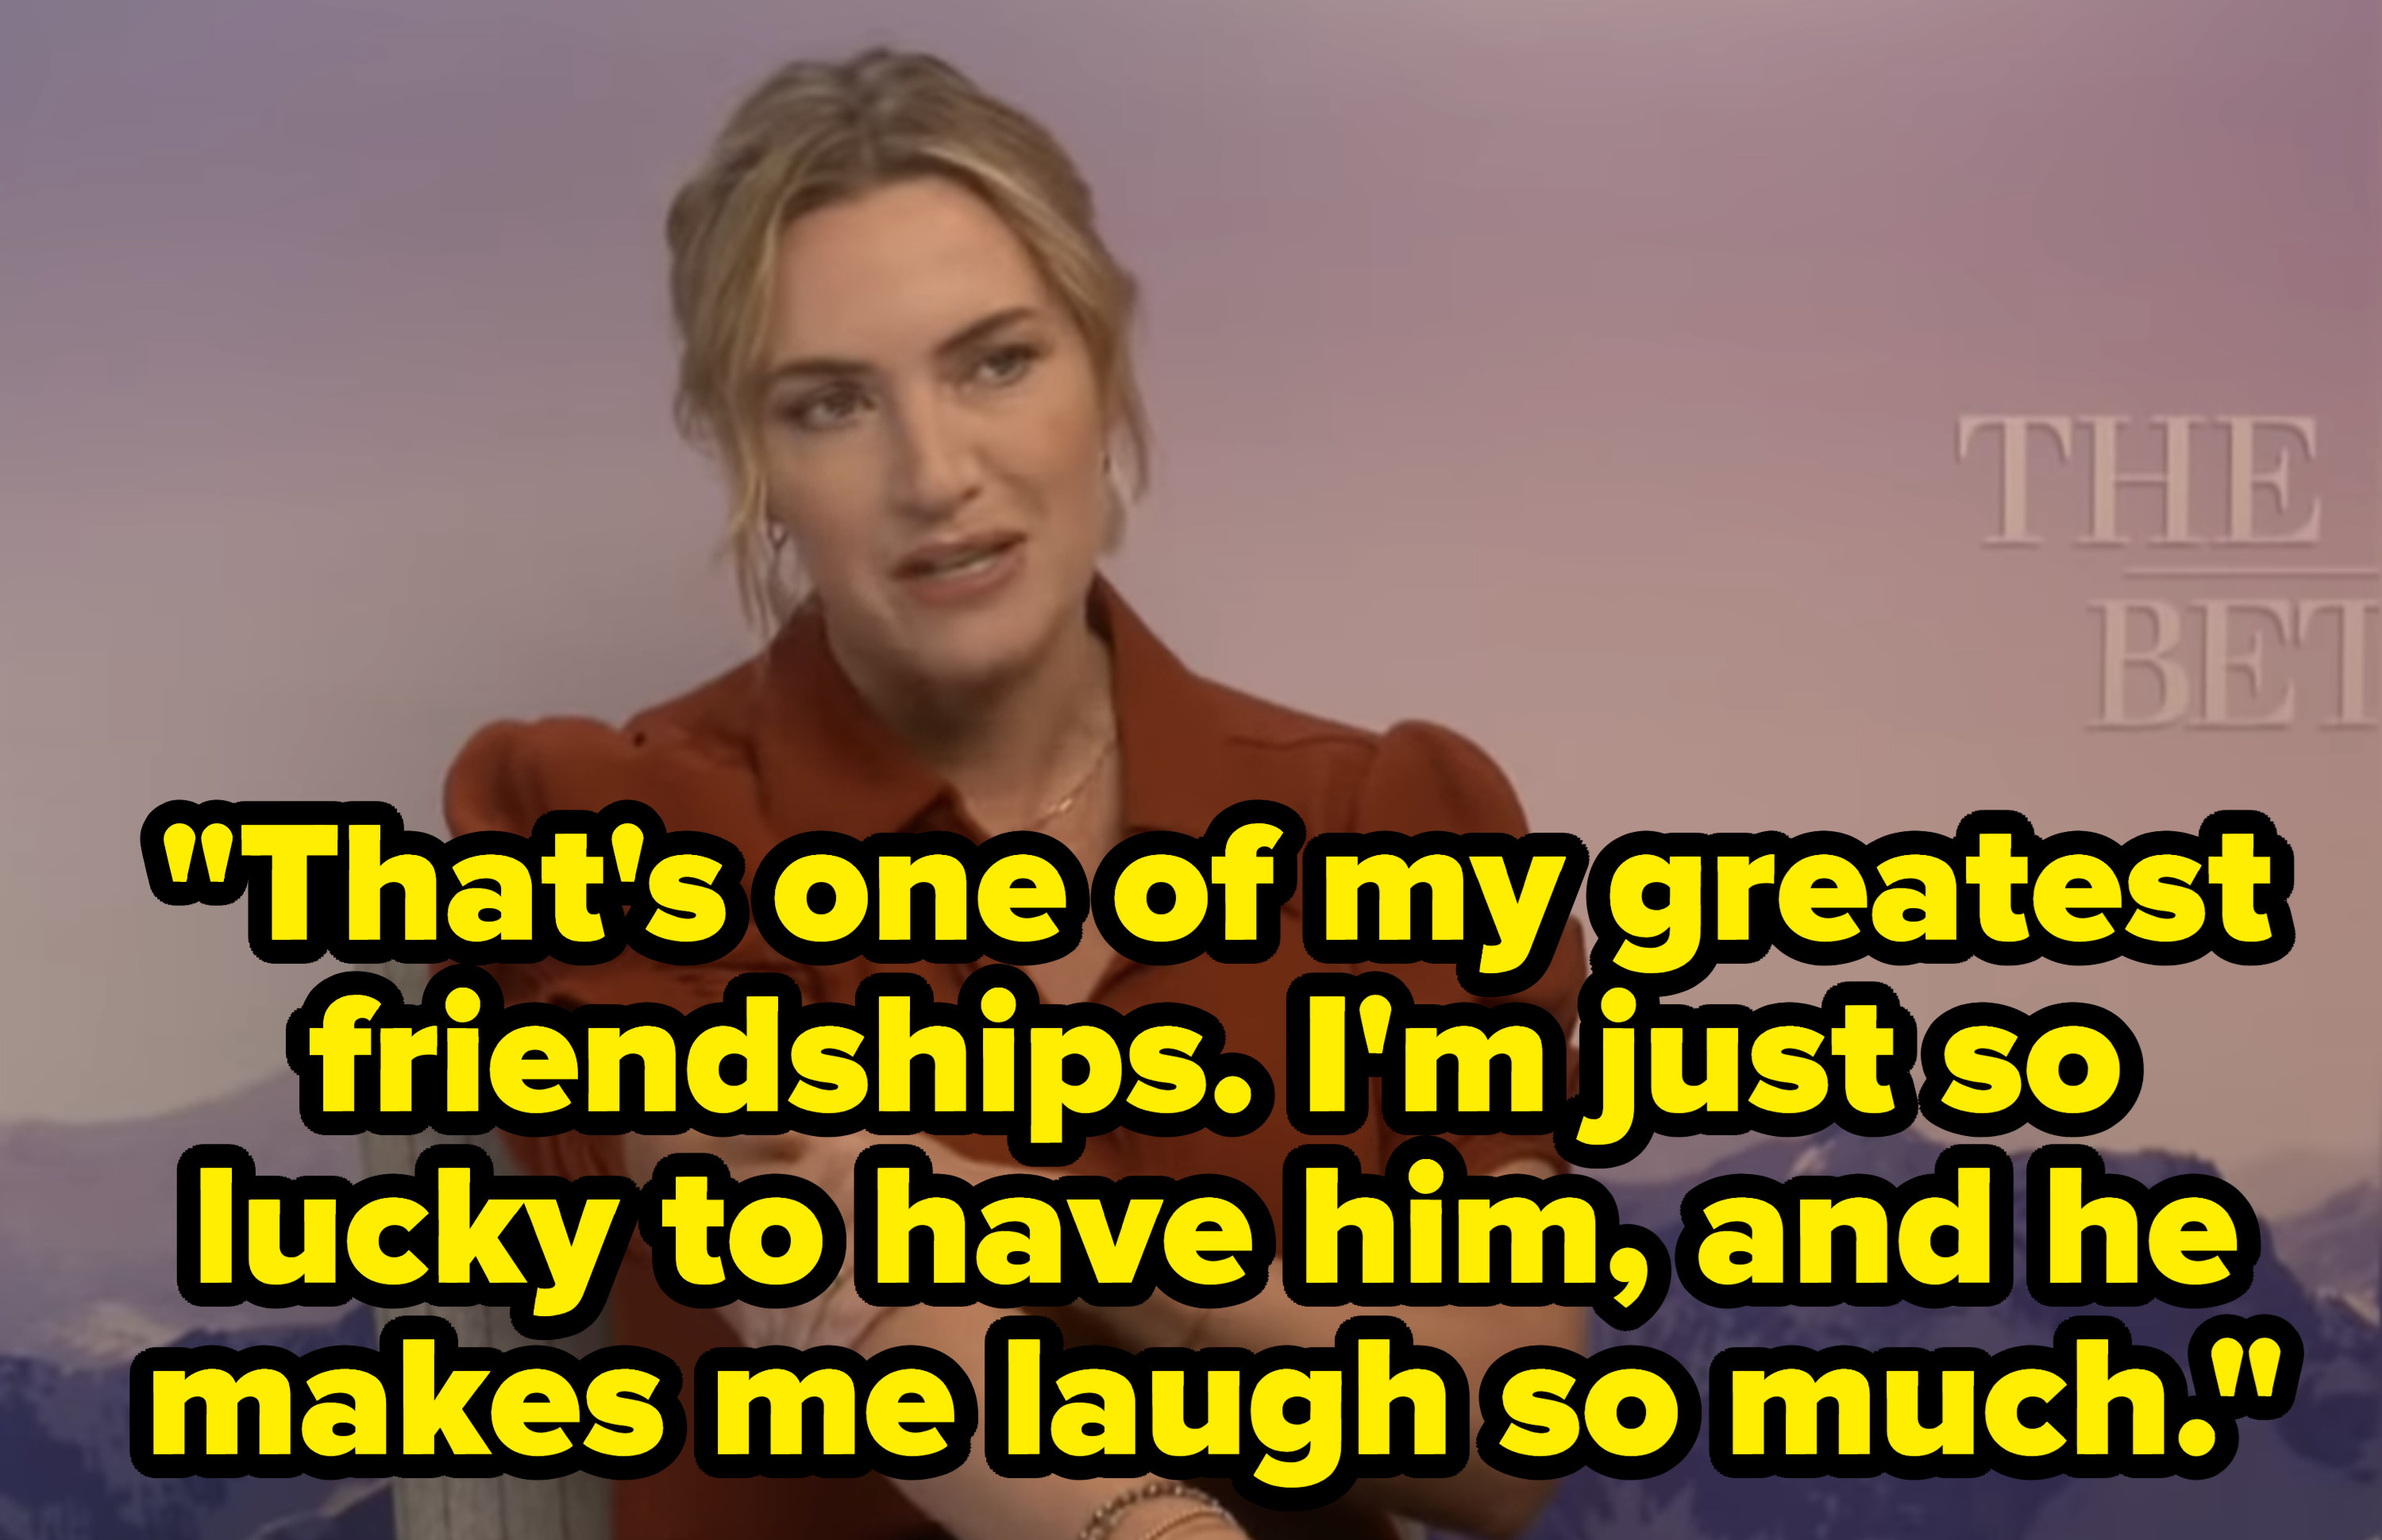 """Kate saying, """"That's one of my greatest friendships. I'm just so lucky to have him, and he makes me laugh so much"""""""